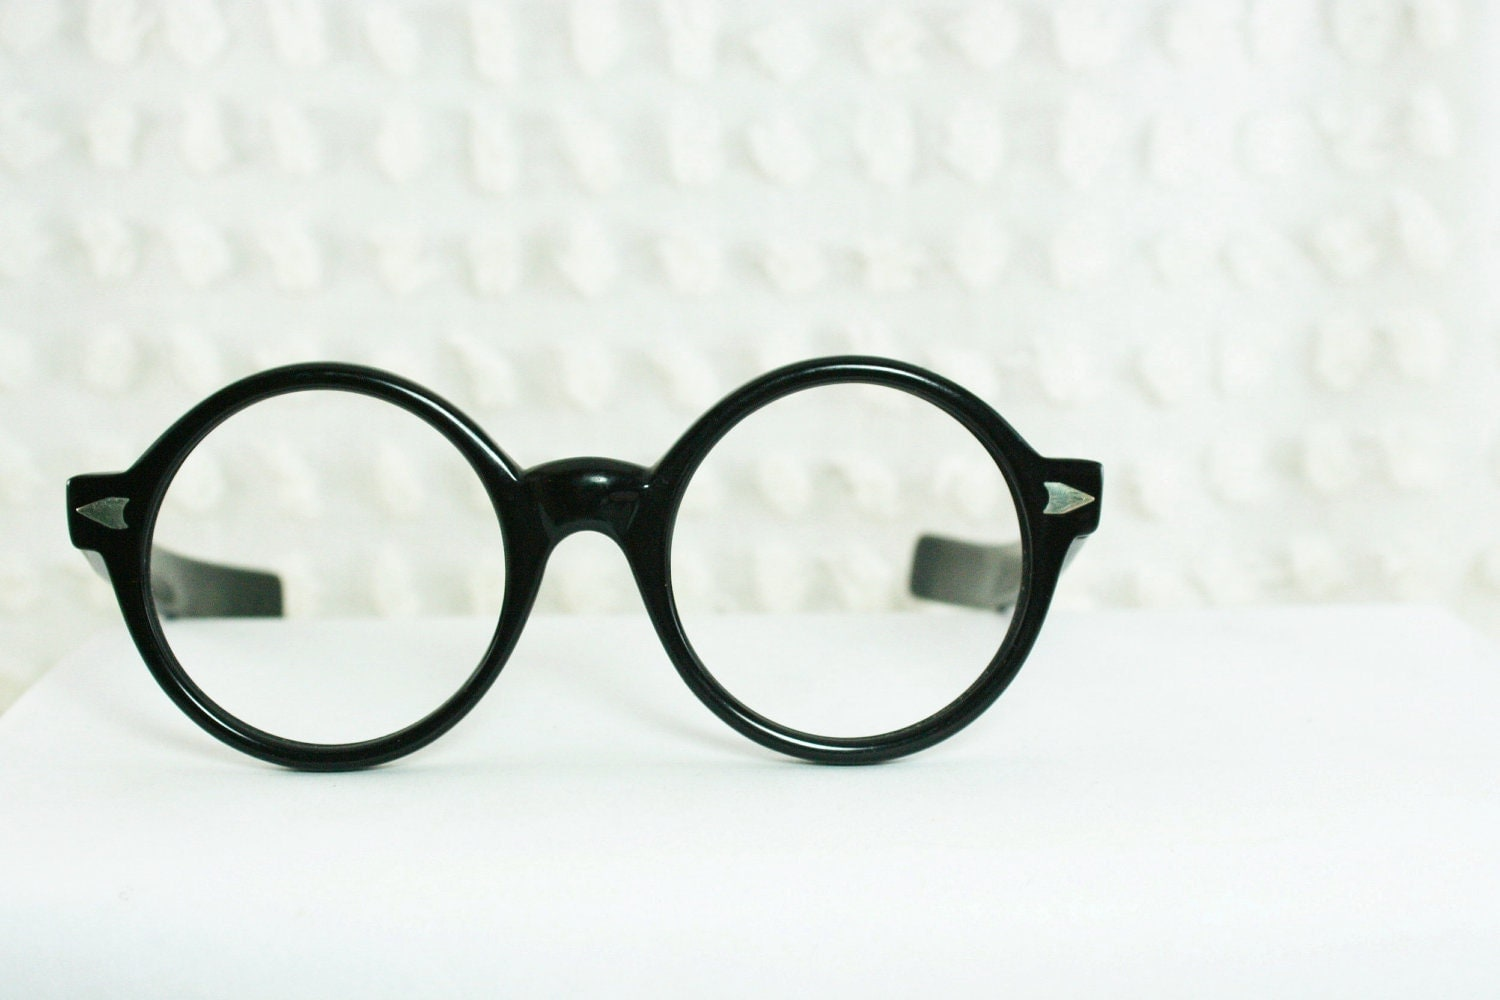 Thick Frame Glasses For Round Face : Vintage 60s Glasses 1960s Round Eyeglasses Black by DIAeyewear